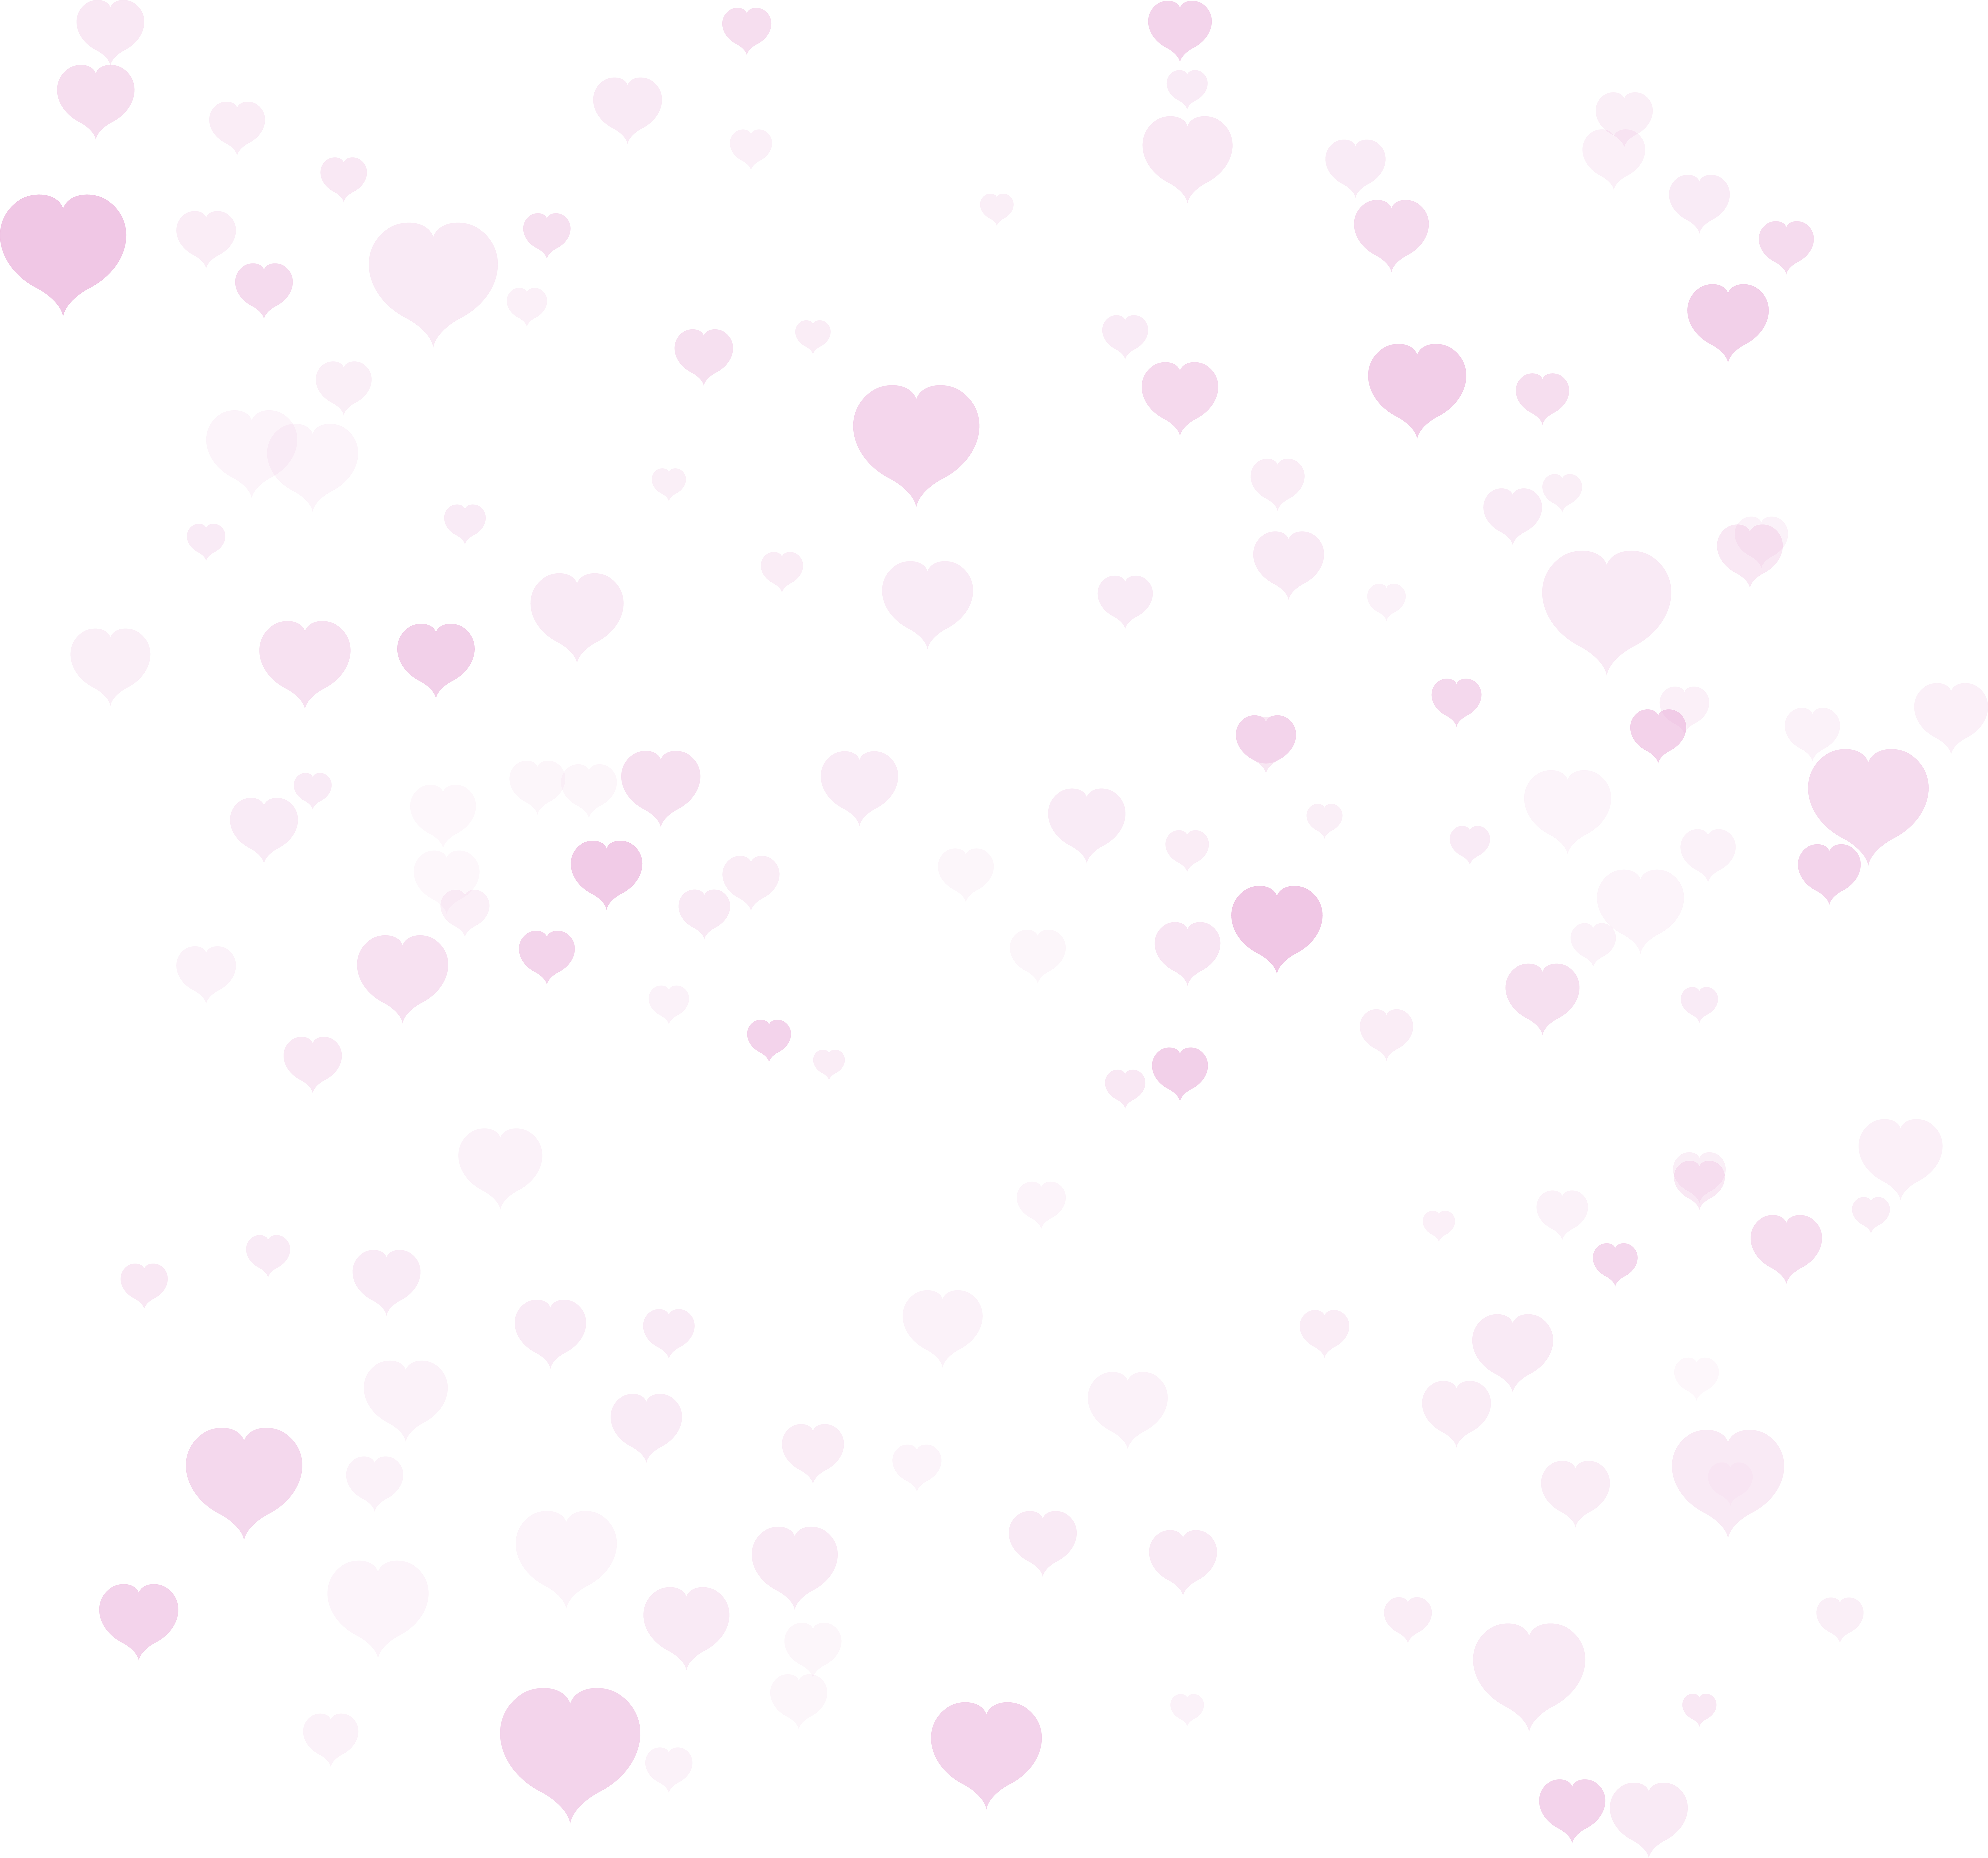 Heart background clipart clip art freeuse stock Hearts for Background Transparent PNG Clip Art | Gallery ... clip art freeuse stock